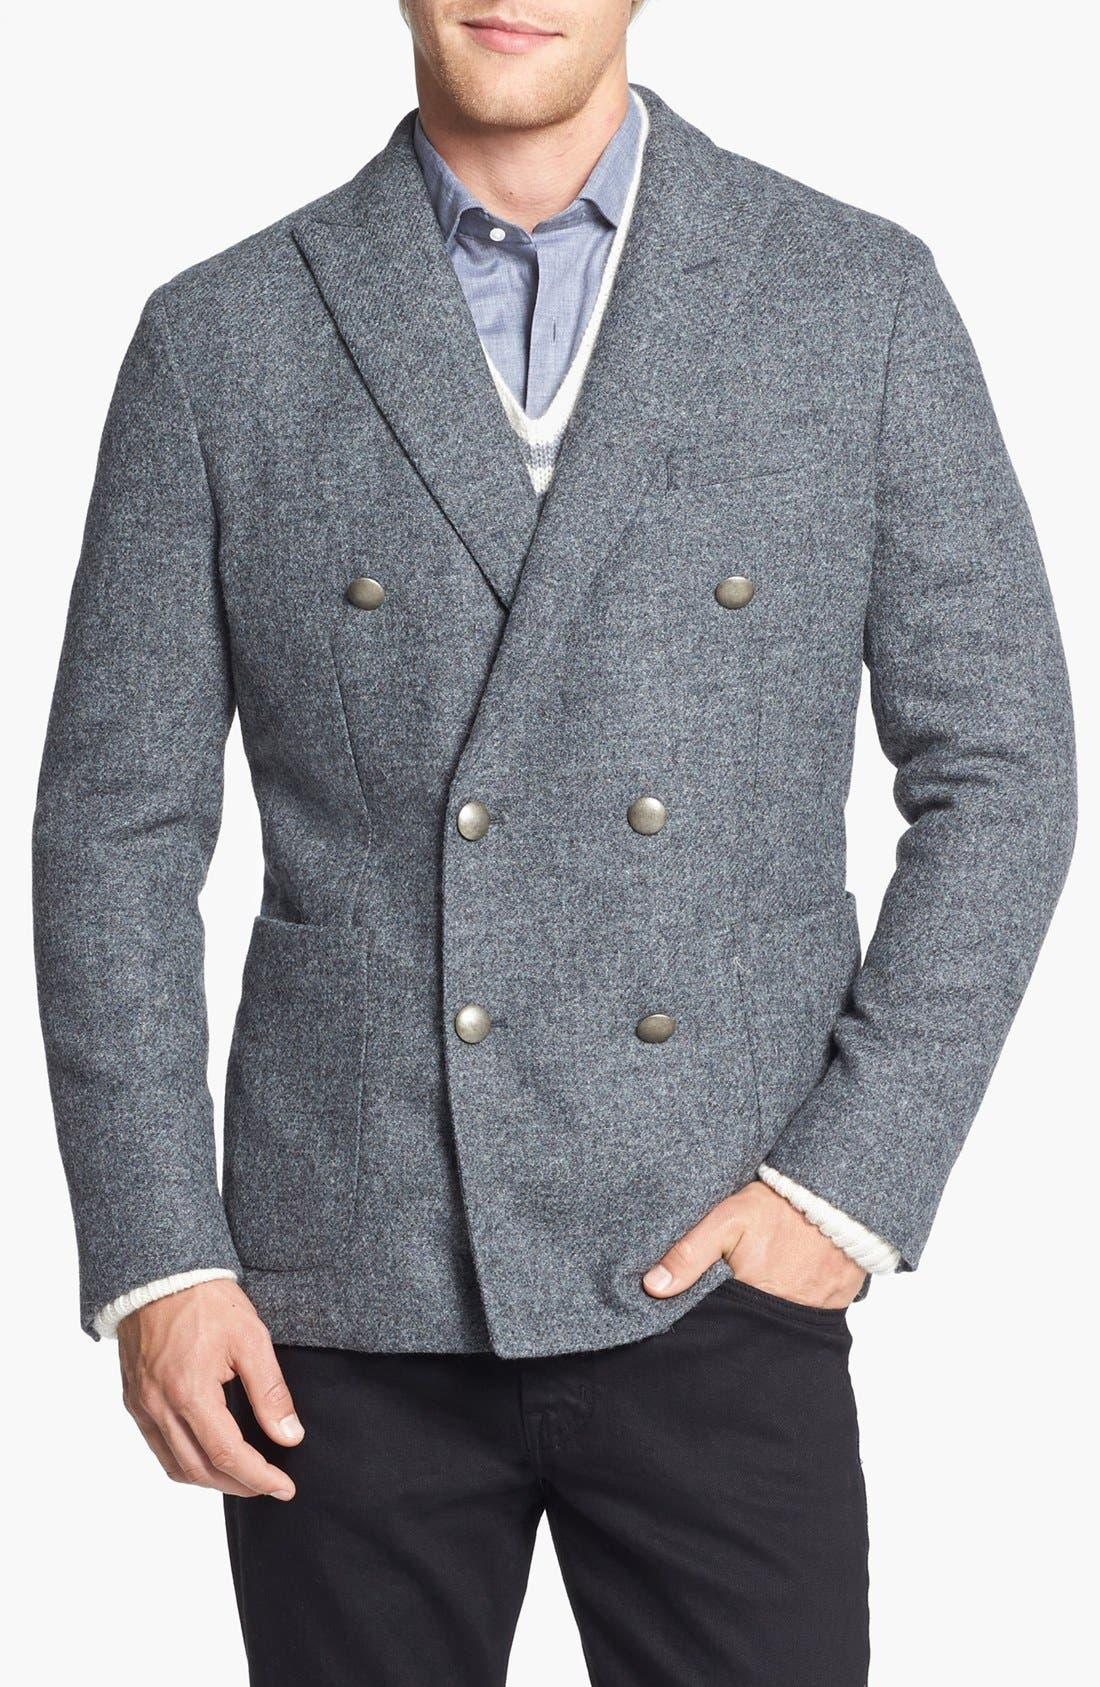 Alternate Image 1 Selected - Kent and Curwen 'Worthington' Double Breasted Shetland Wool Sportcoat